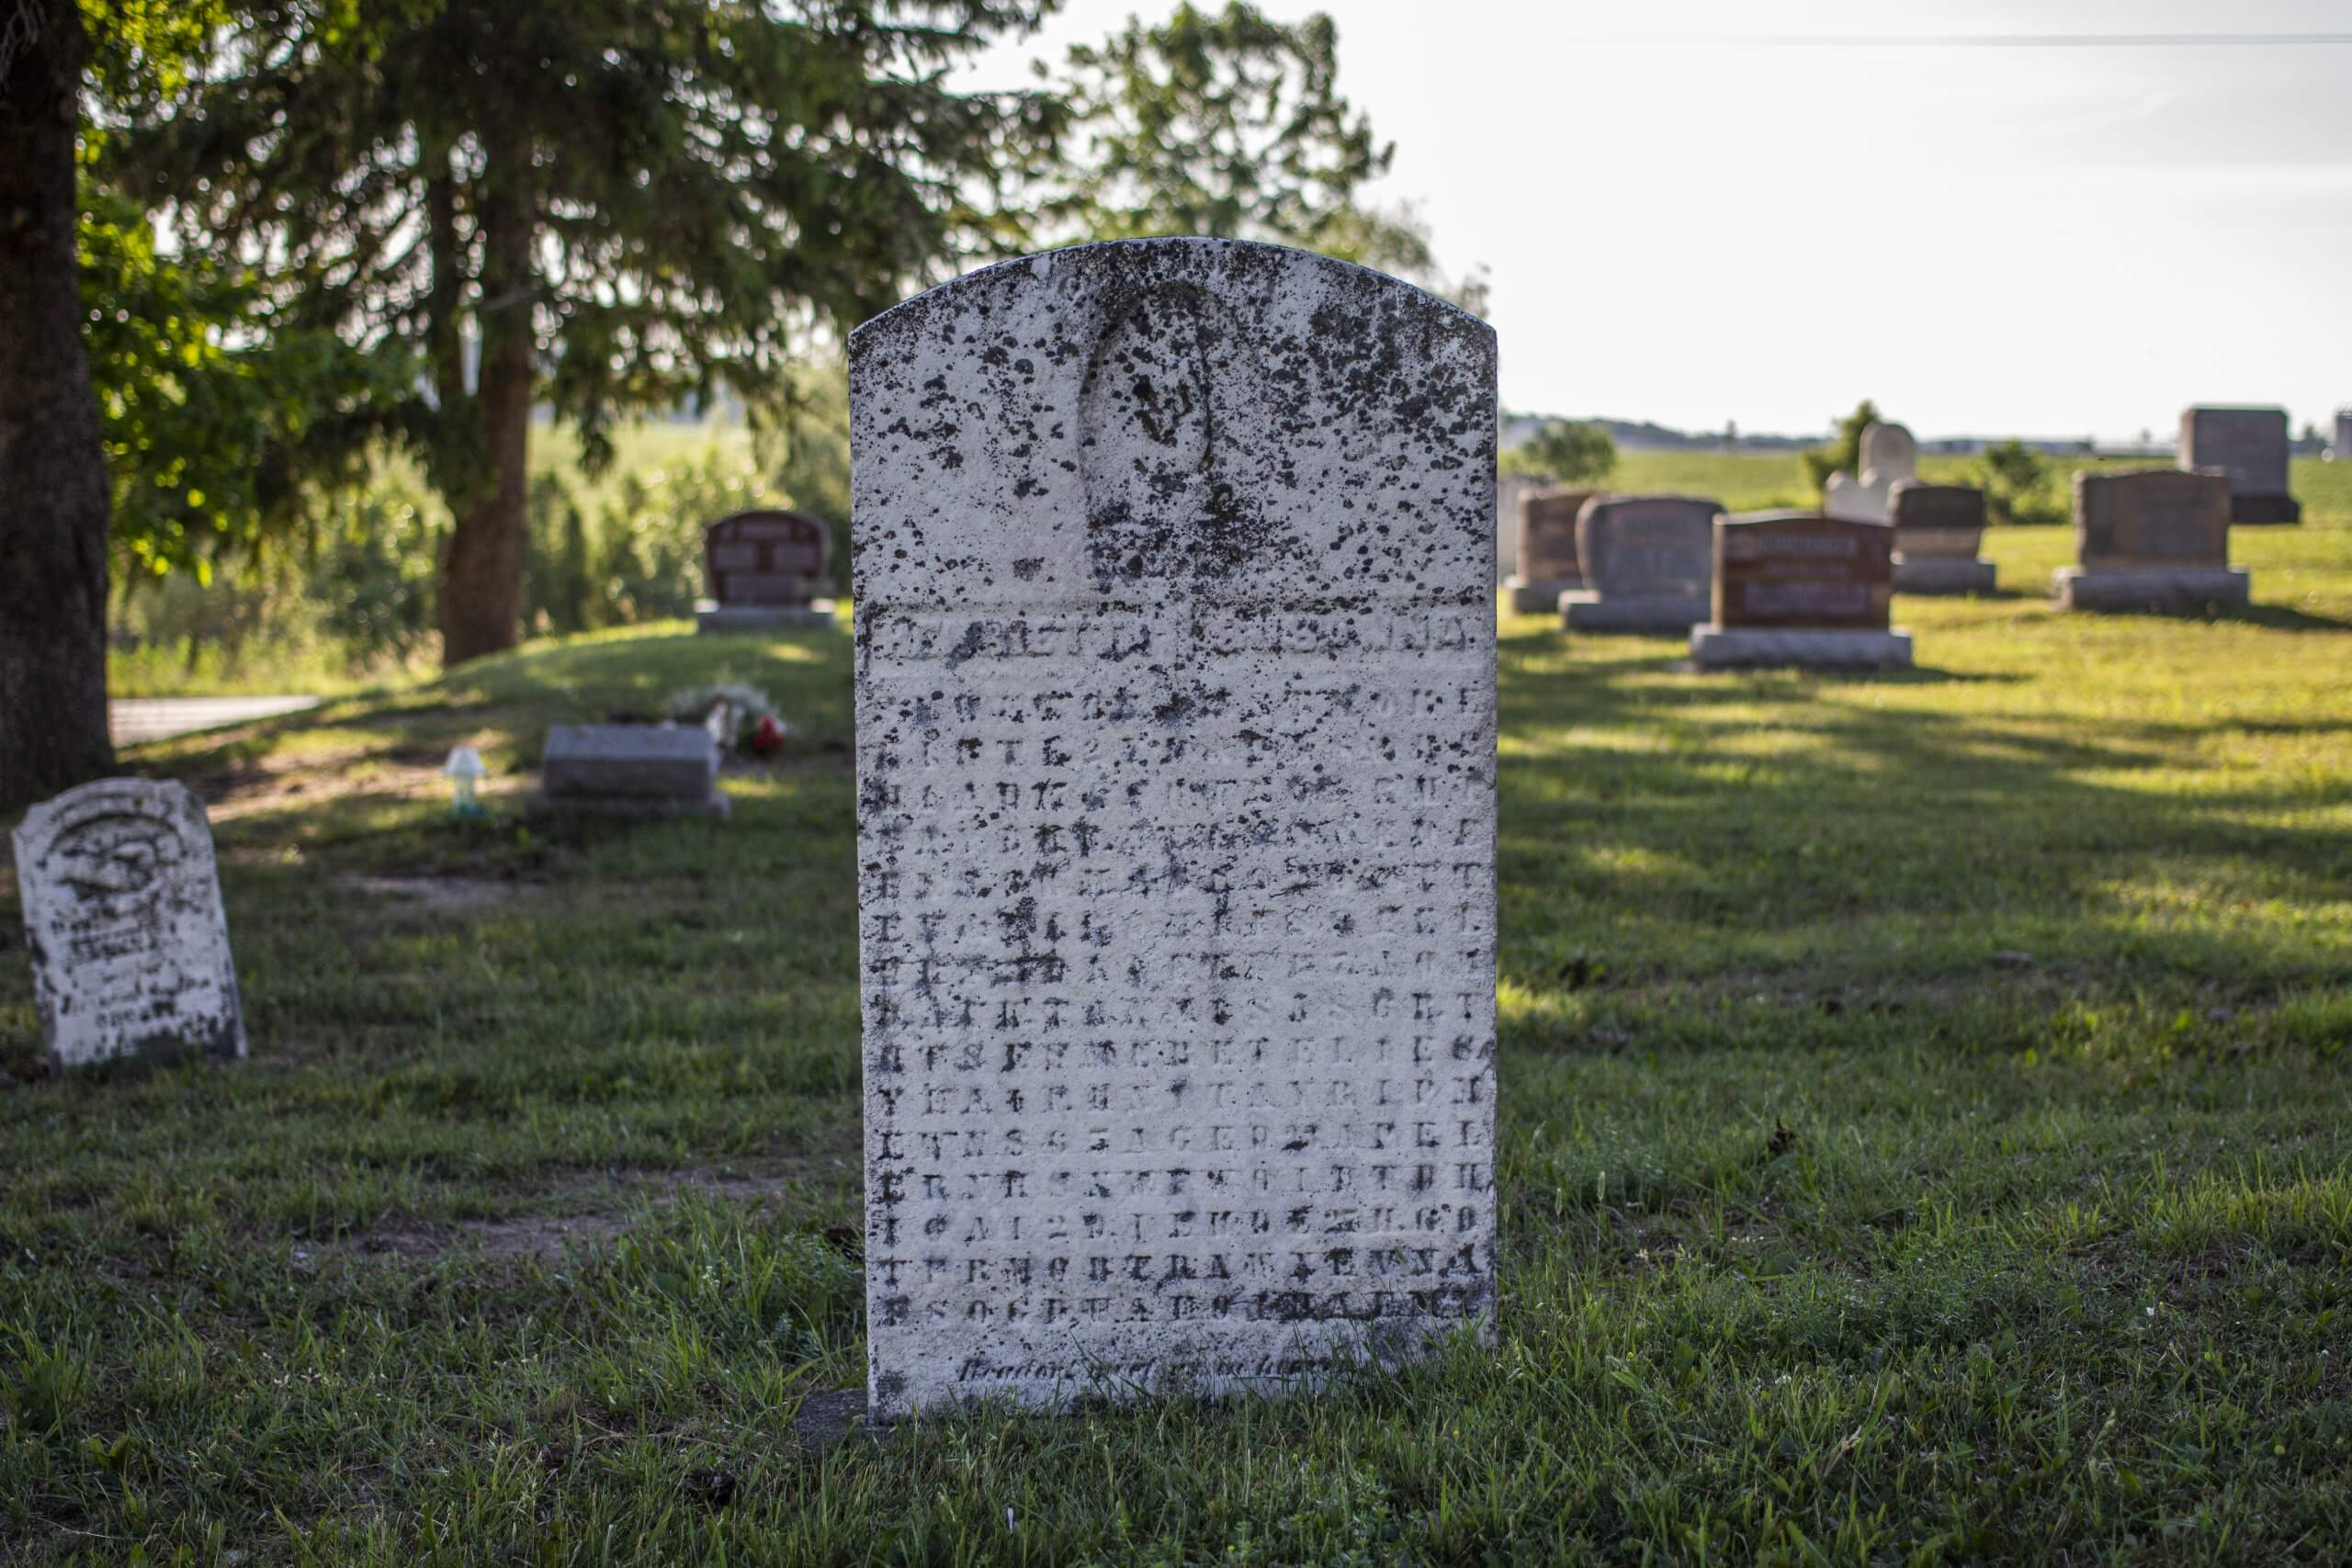 Ontario's Cryptic Gravestone created by Samuel Bean